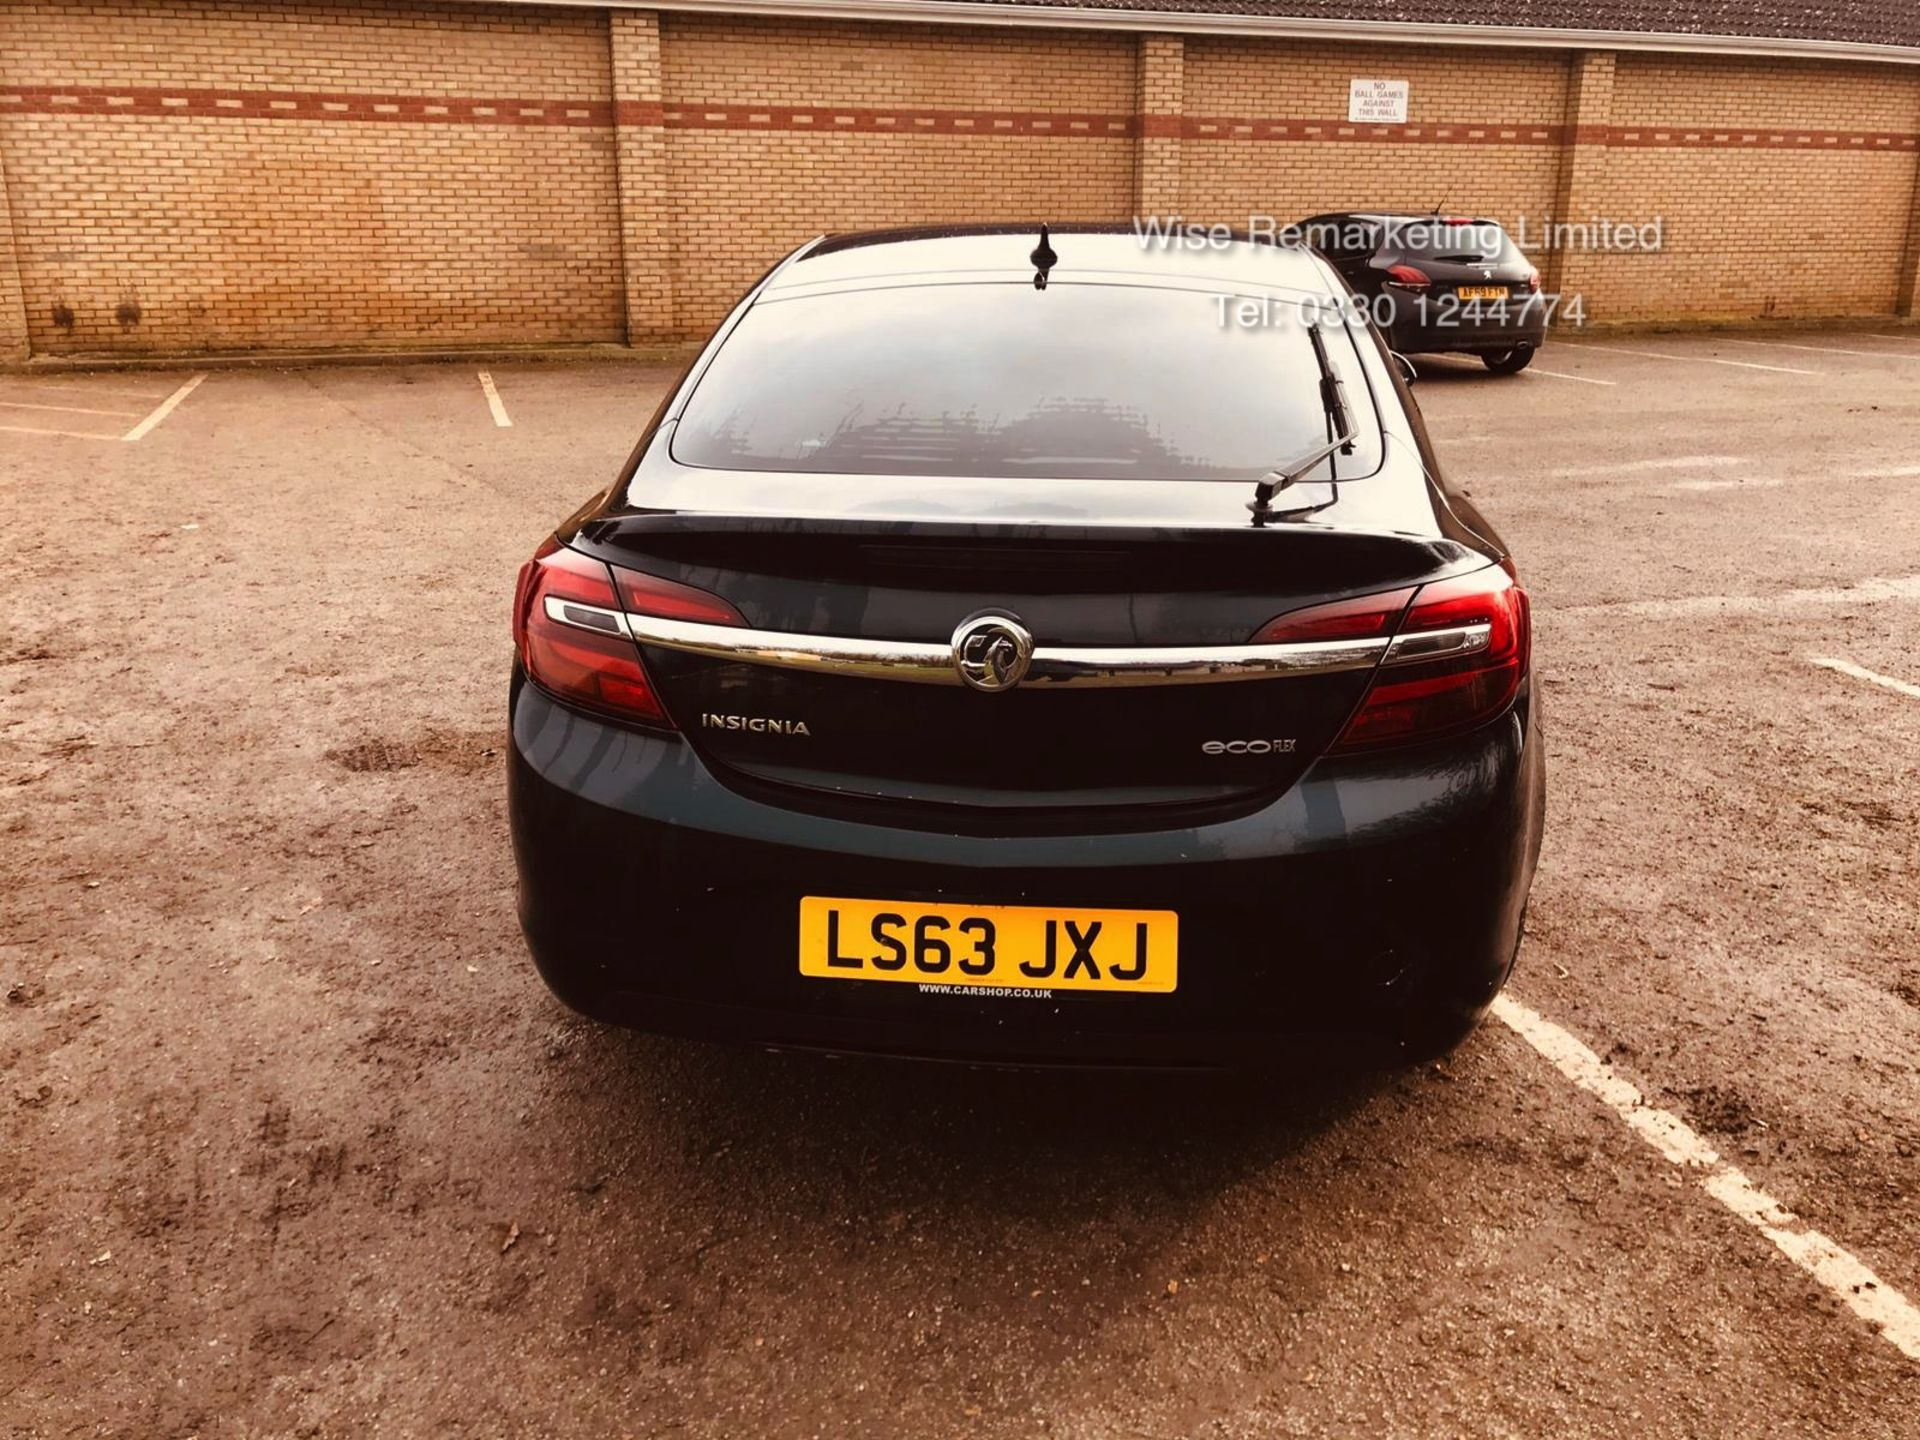 Lot 35 - (RESERVE MET) Vauxhall Insignia 2.0 CDTI Techline 6 Speed - 2014 Model - Part Leather -